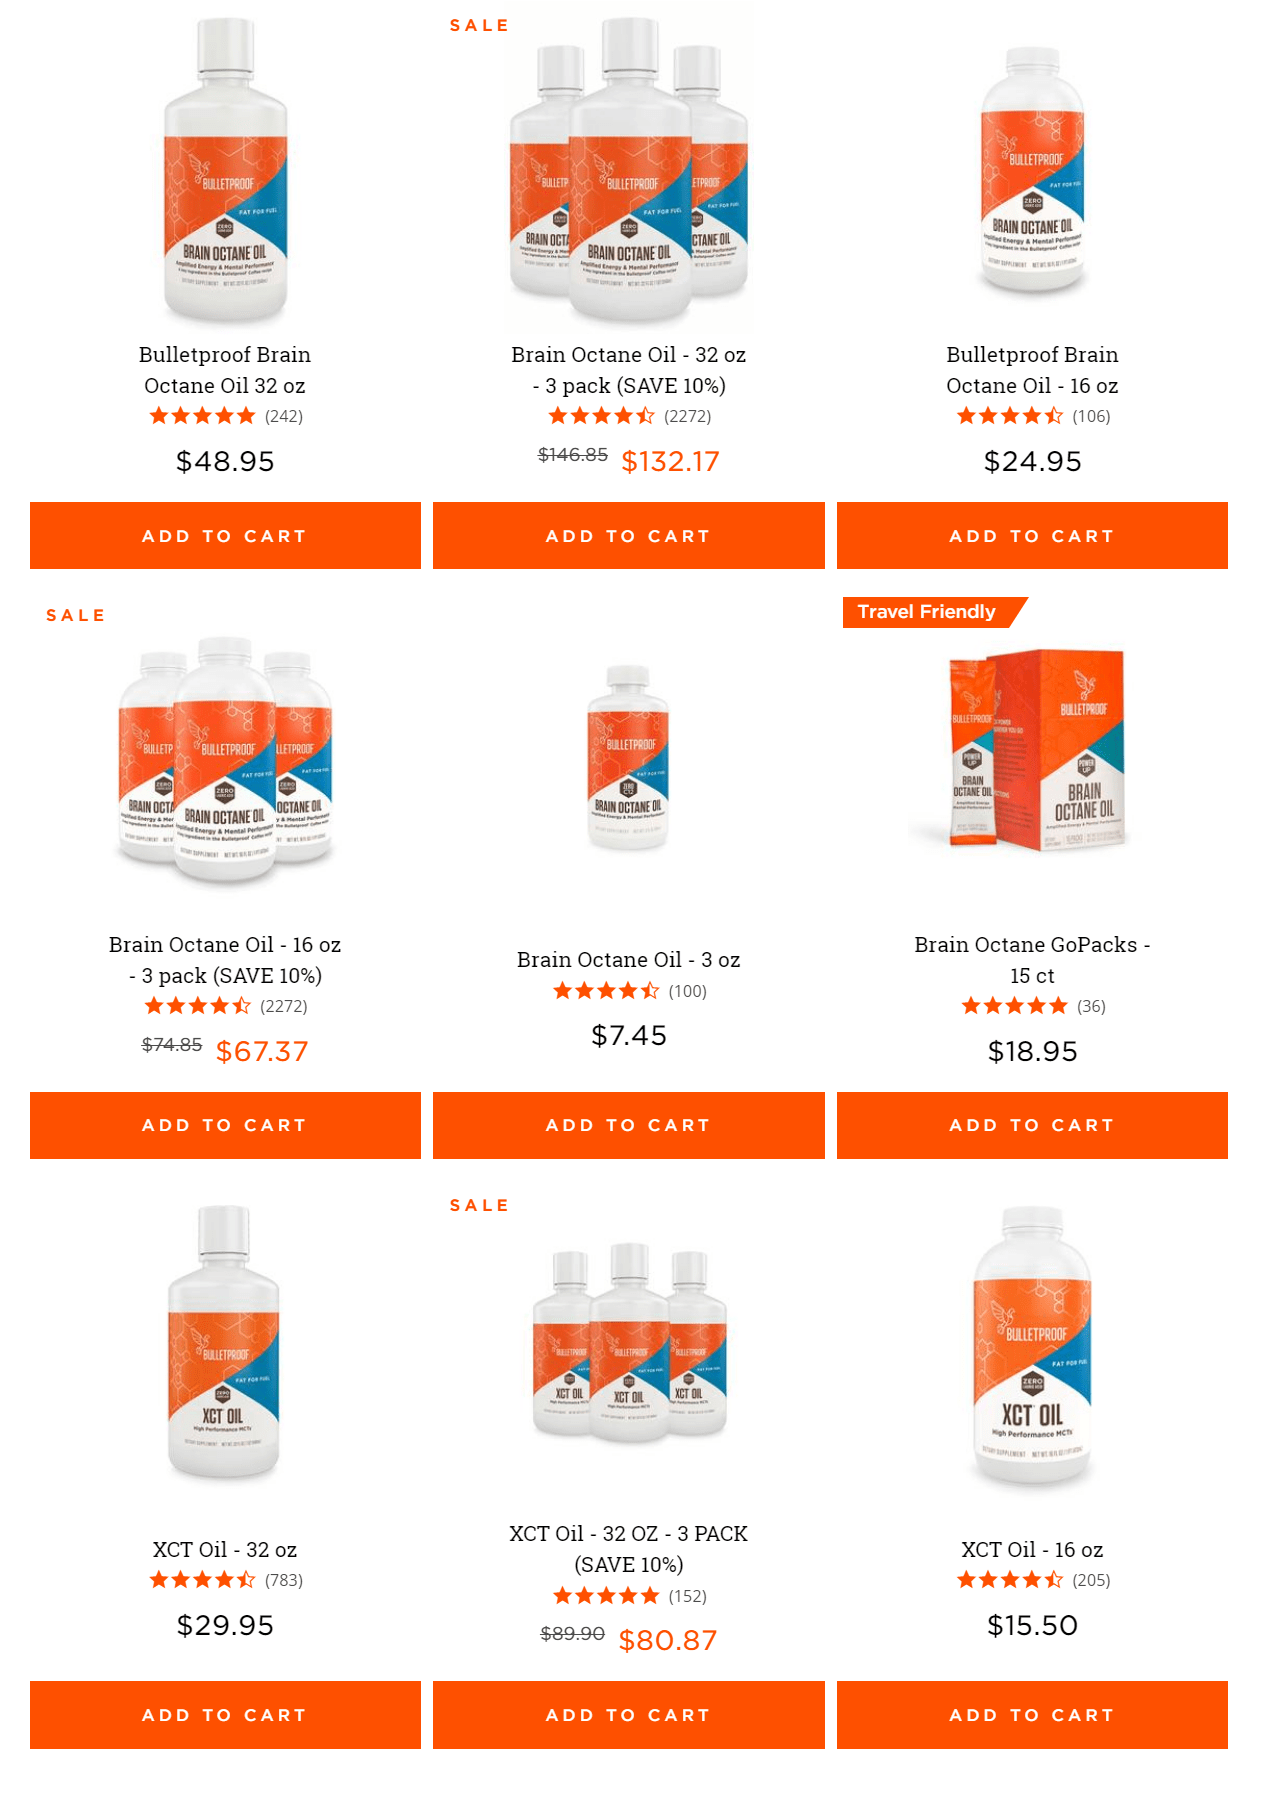 Bulletproof Coupon Codes-Brain Octane Oil Pricing